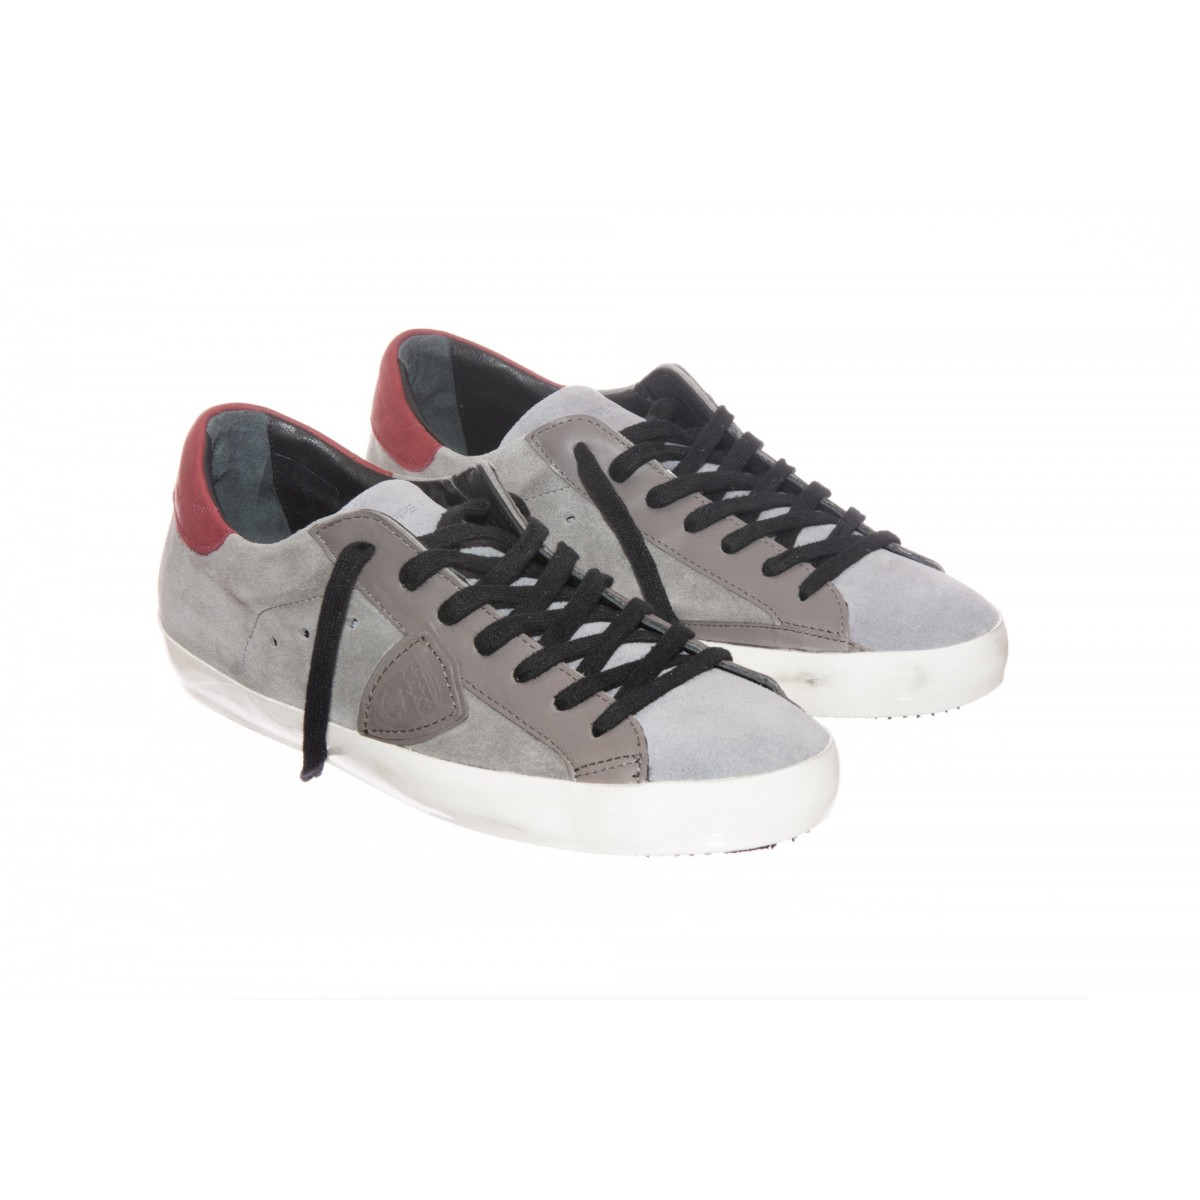 Scarpa Philippe model paris - Cllu classic mixage